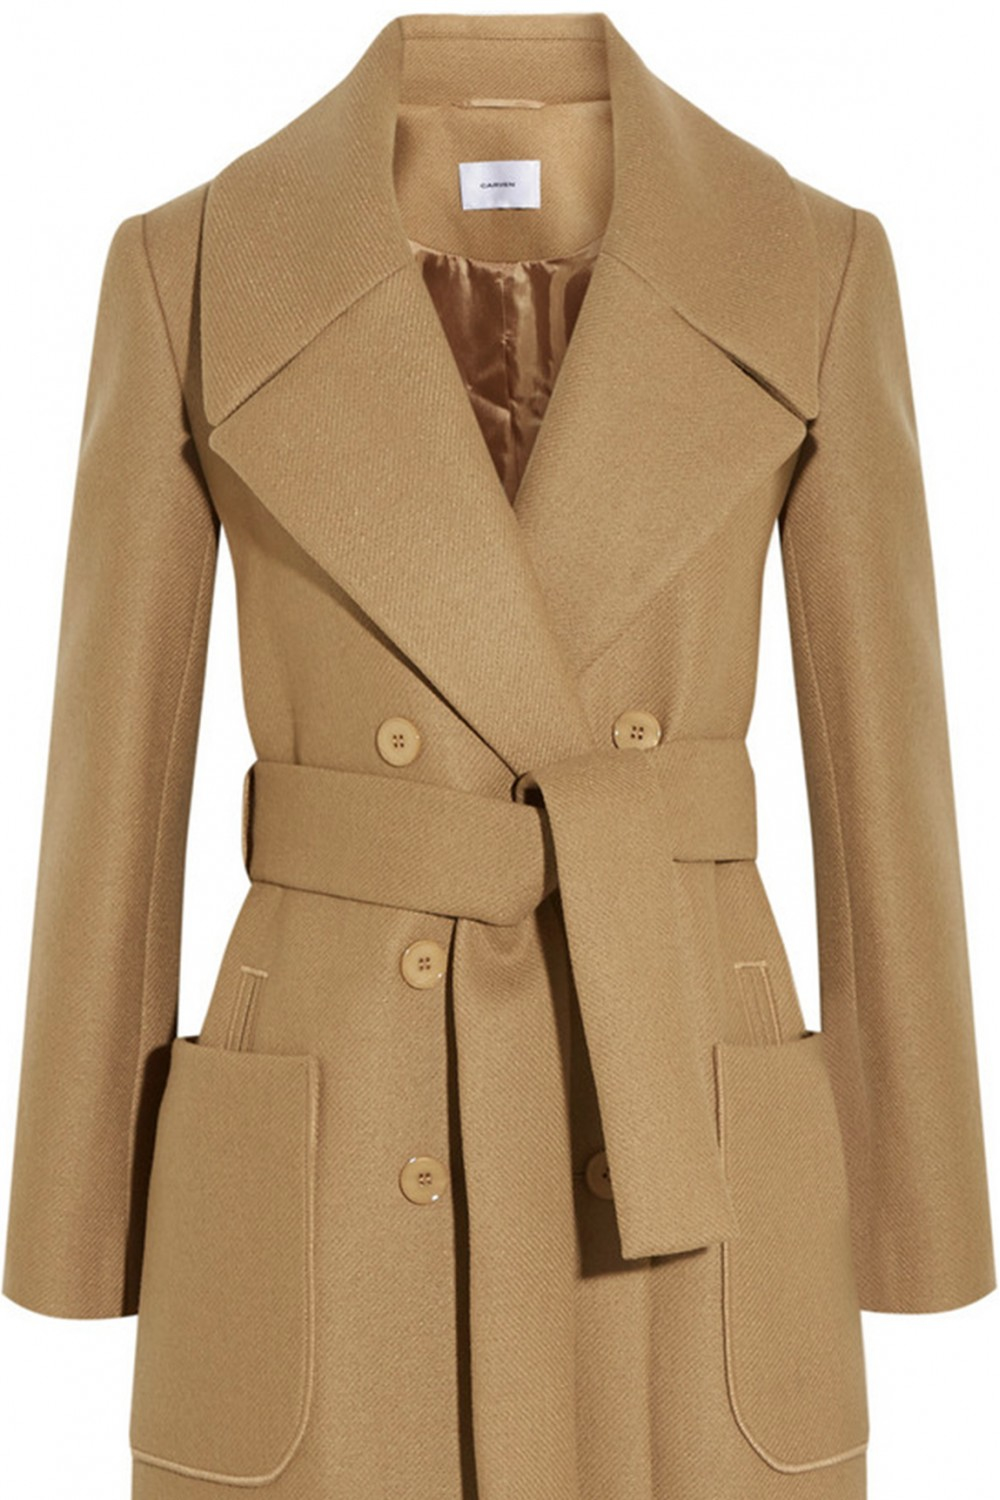 Details about Mens RALPH LAUREN Camel Beige Long Trench Outerwear Coat Jacket Size 46 L. Mens RALPH LAUREN Camel Beige Long Trench Outerwear Coat Jacket Size 46 L | Add to watch list. Find out more about the Top-Rated Seller program - opens in a new window or tab. gobitreasures.